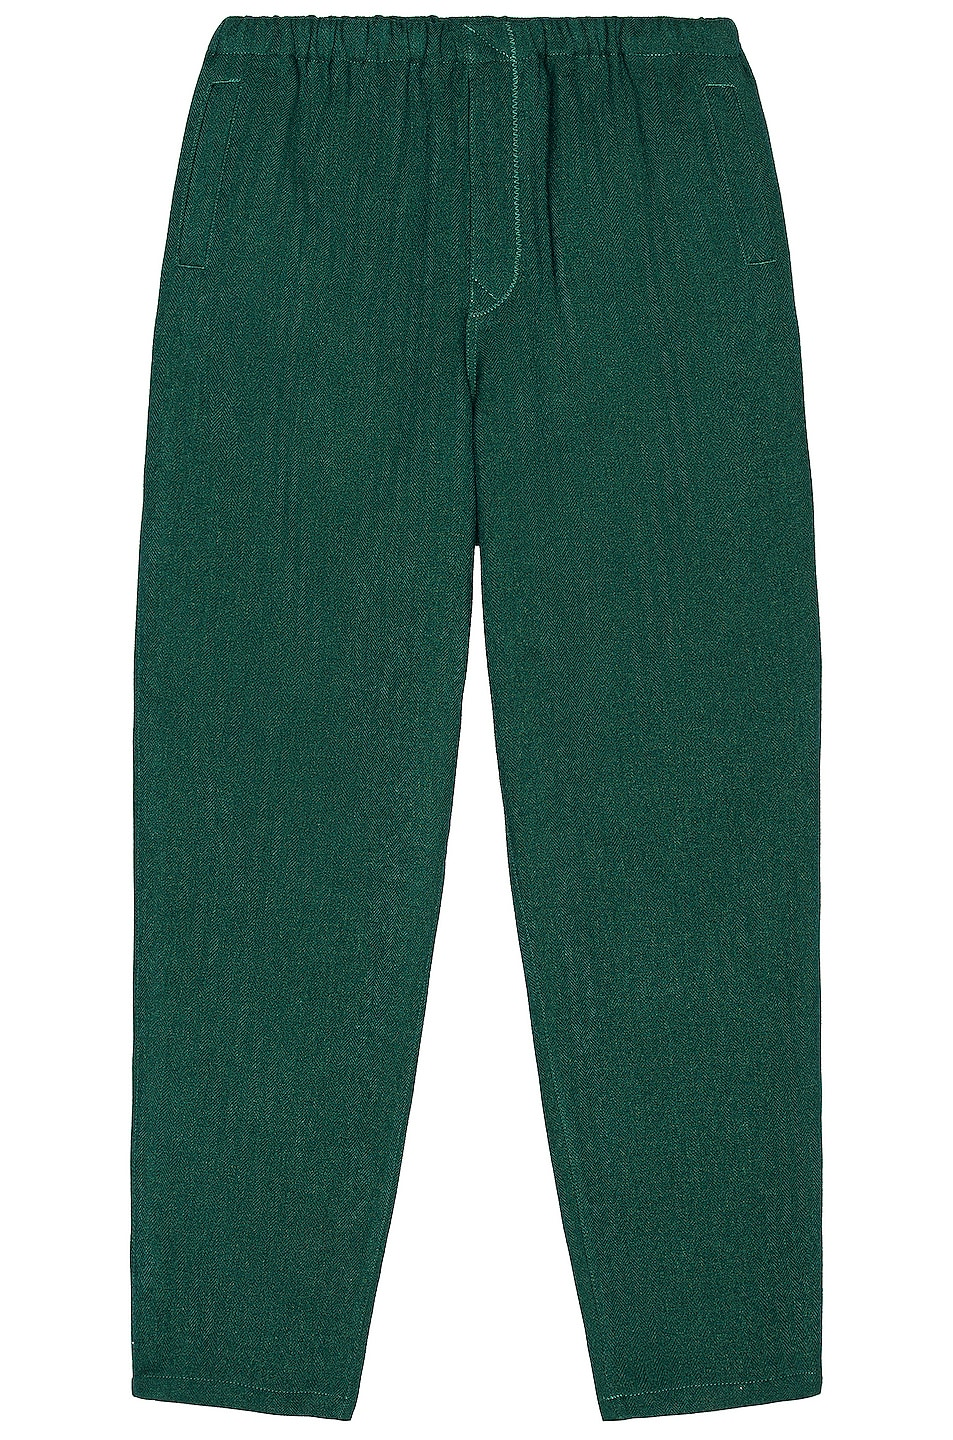 Image 1 of Undercover Pants in Green